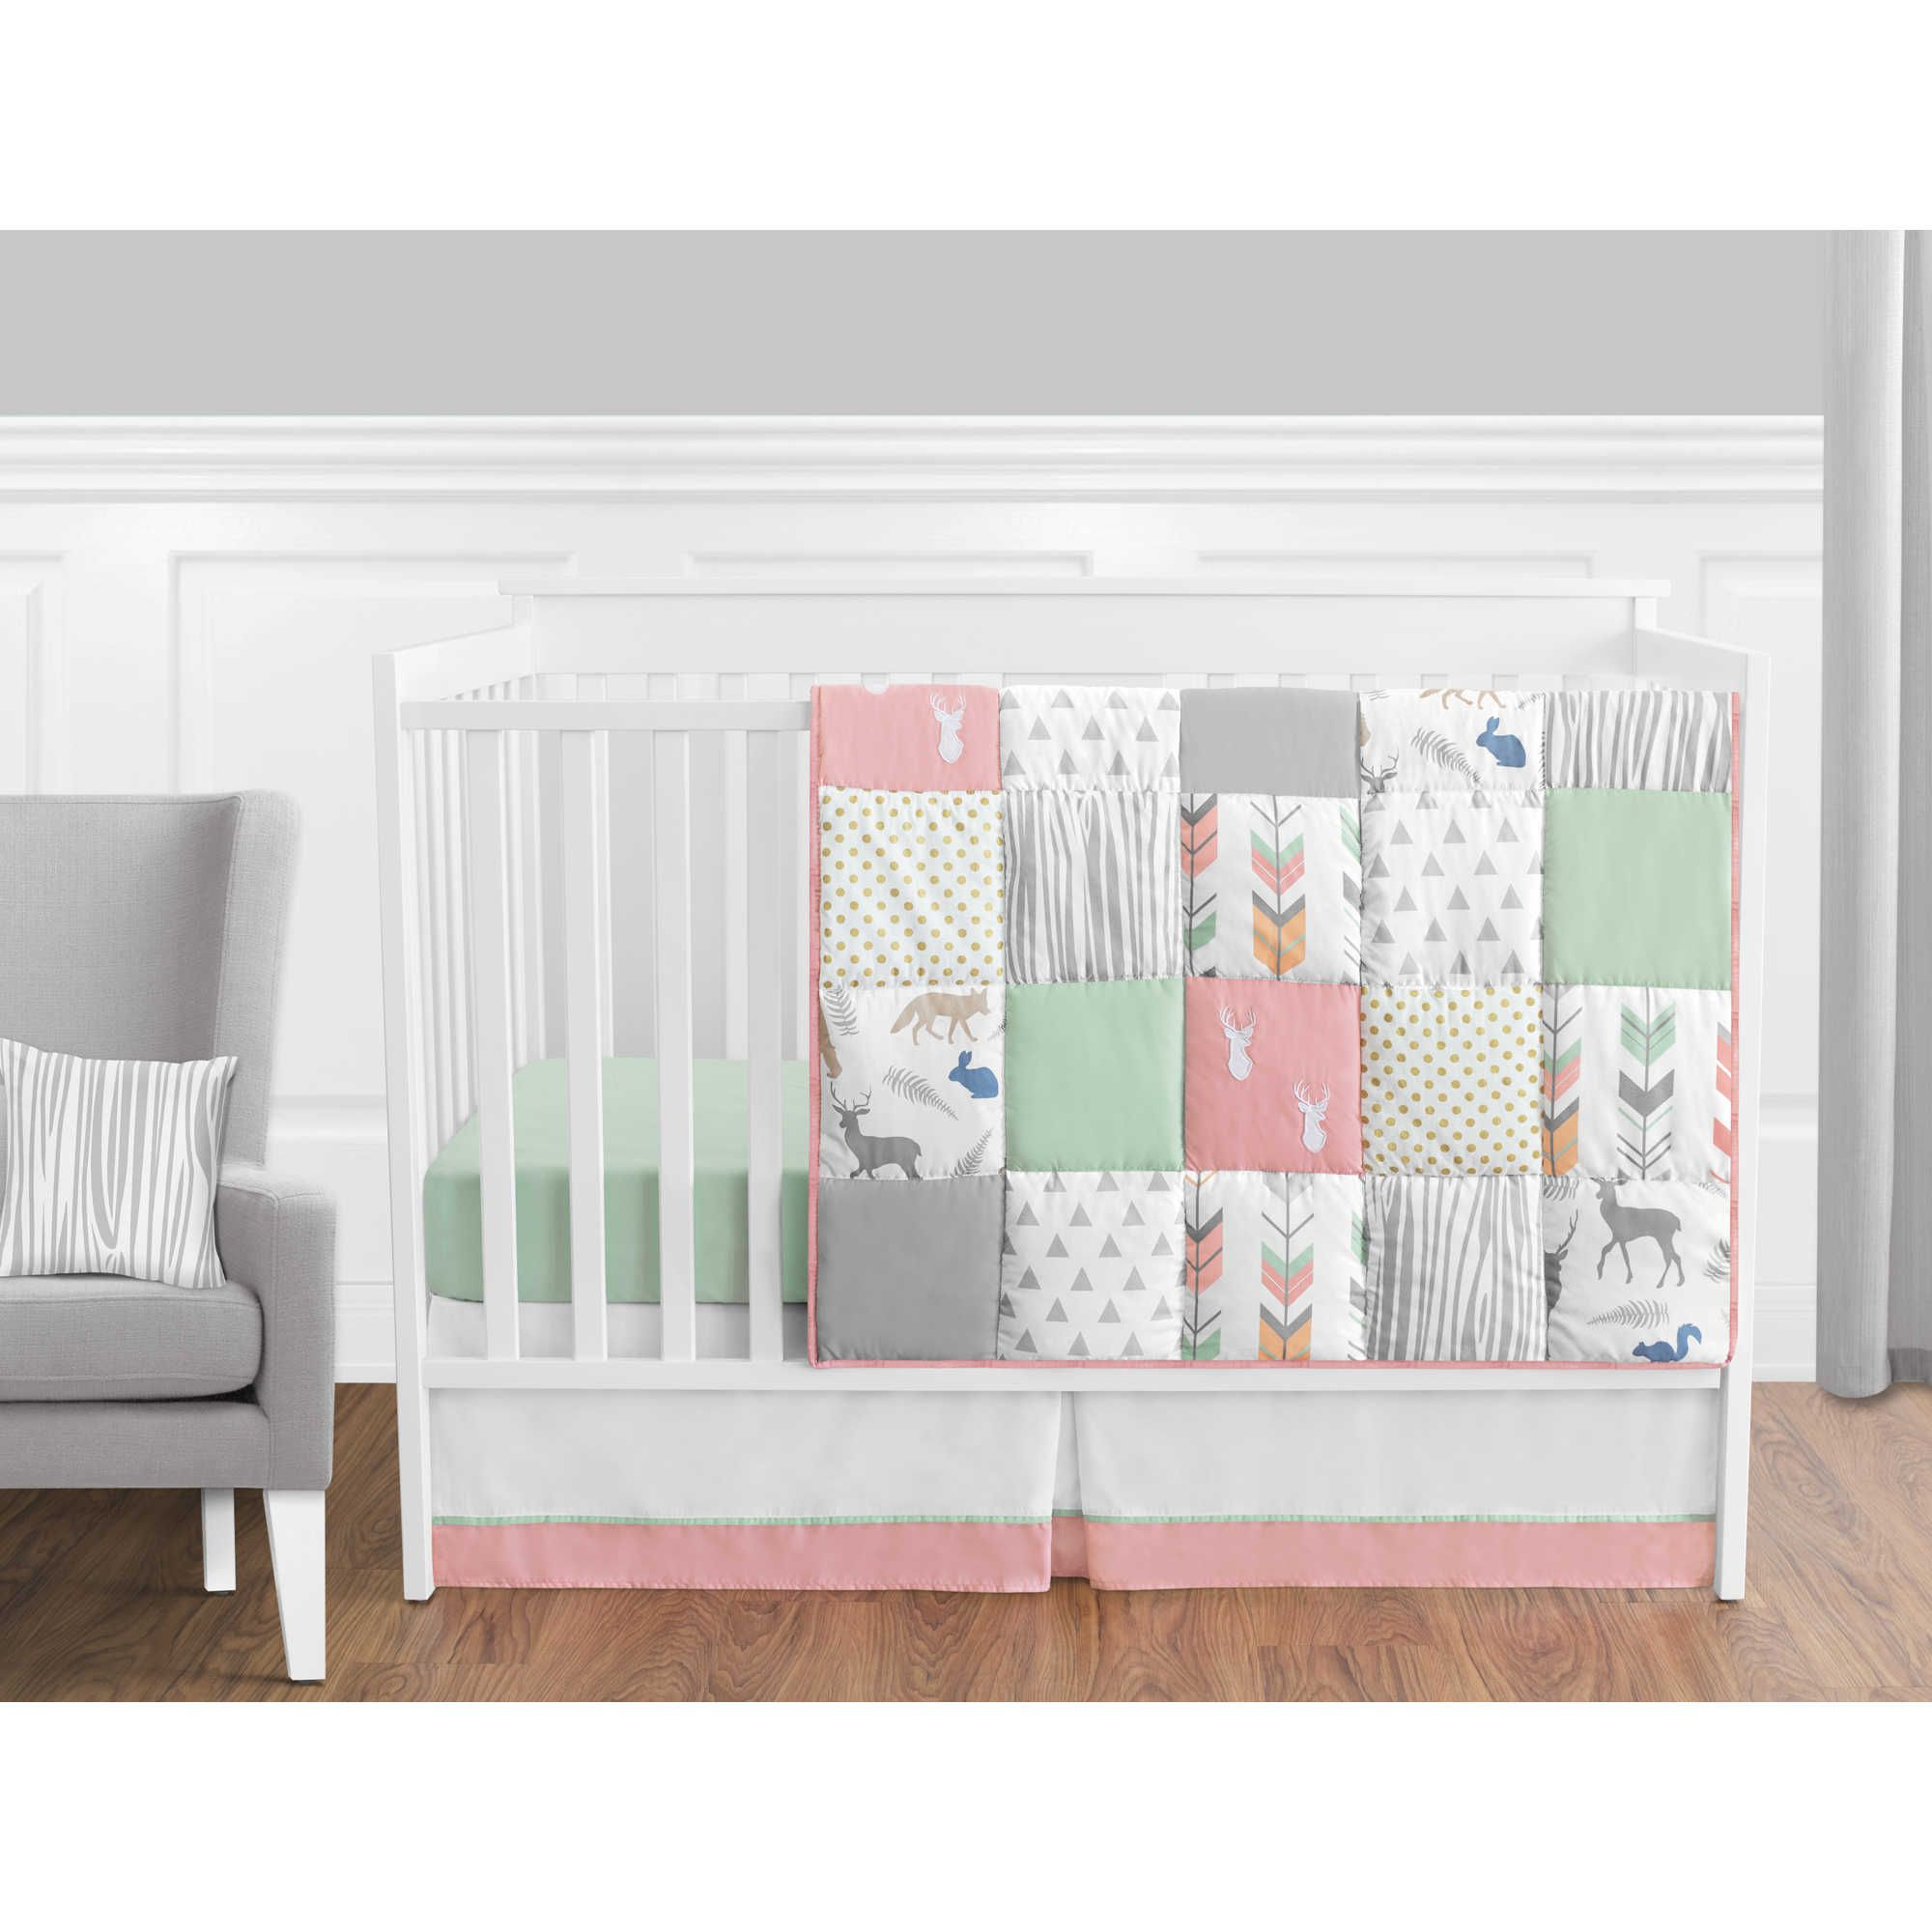 protector rail navy jojo sweet designs covers wrap blue amazon dp side crib for cribs collection baby bedding teething long cover com guard